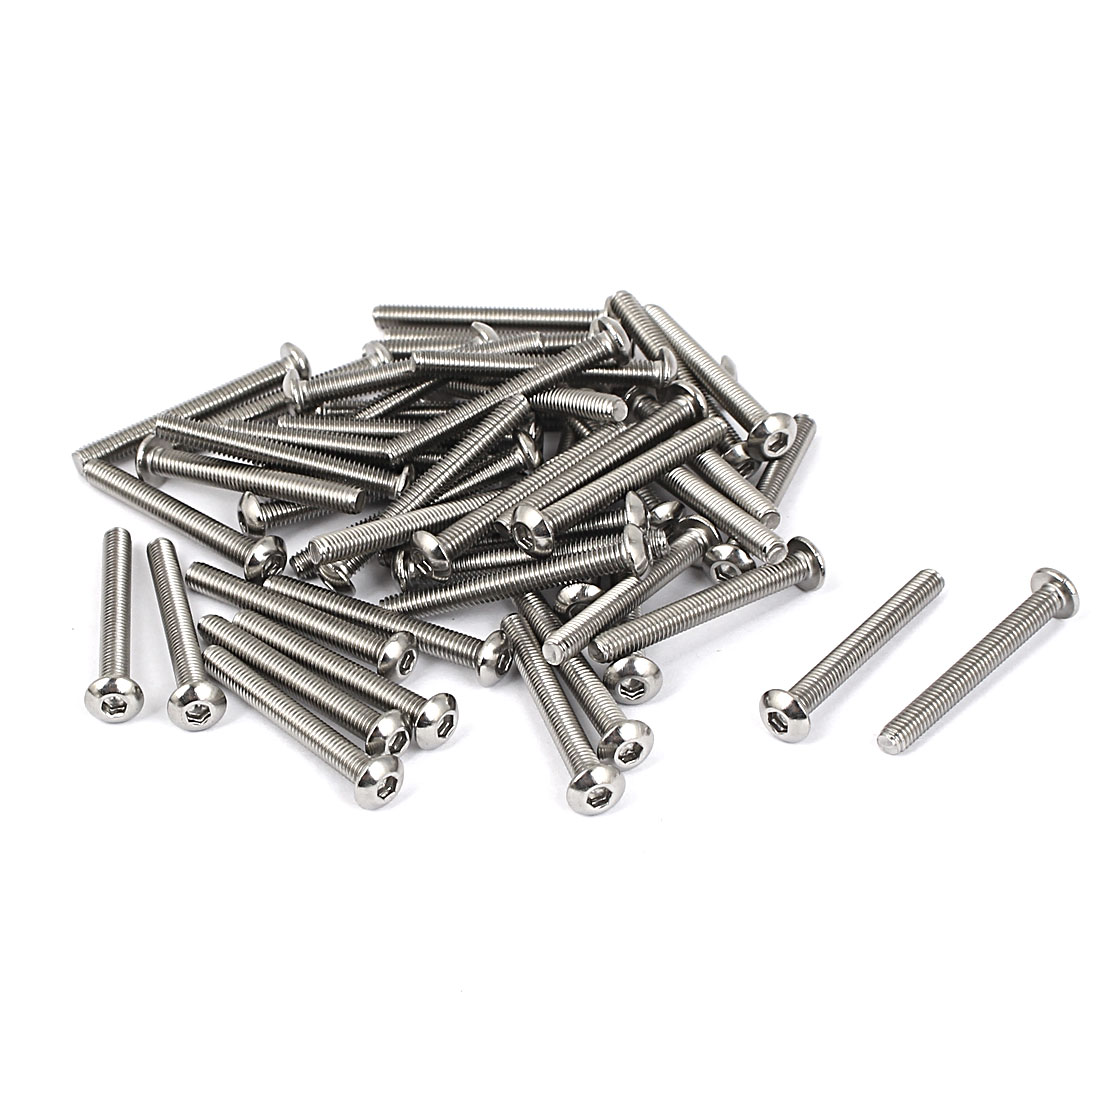 M3 x 25mm Full Thread Button Head Socket Cap Screw Silver Tone 50 Pcs